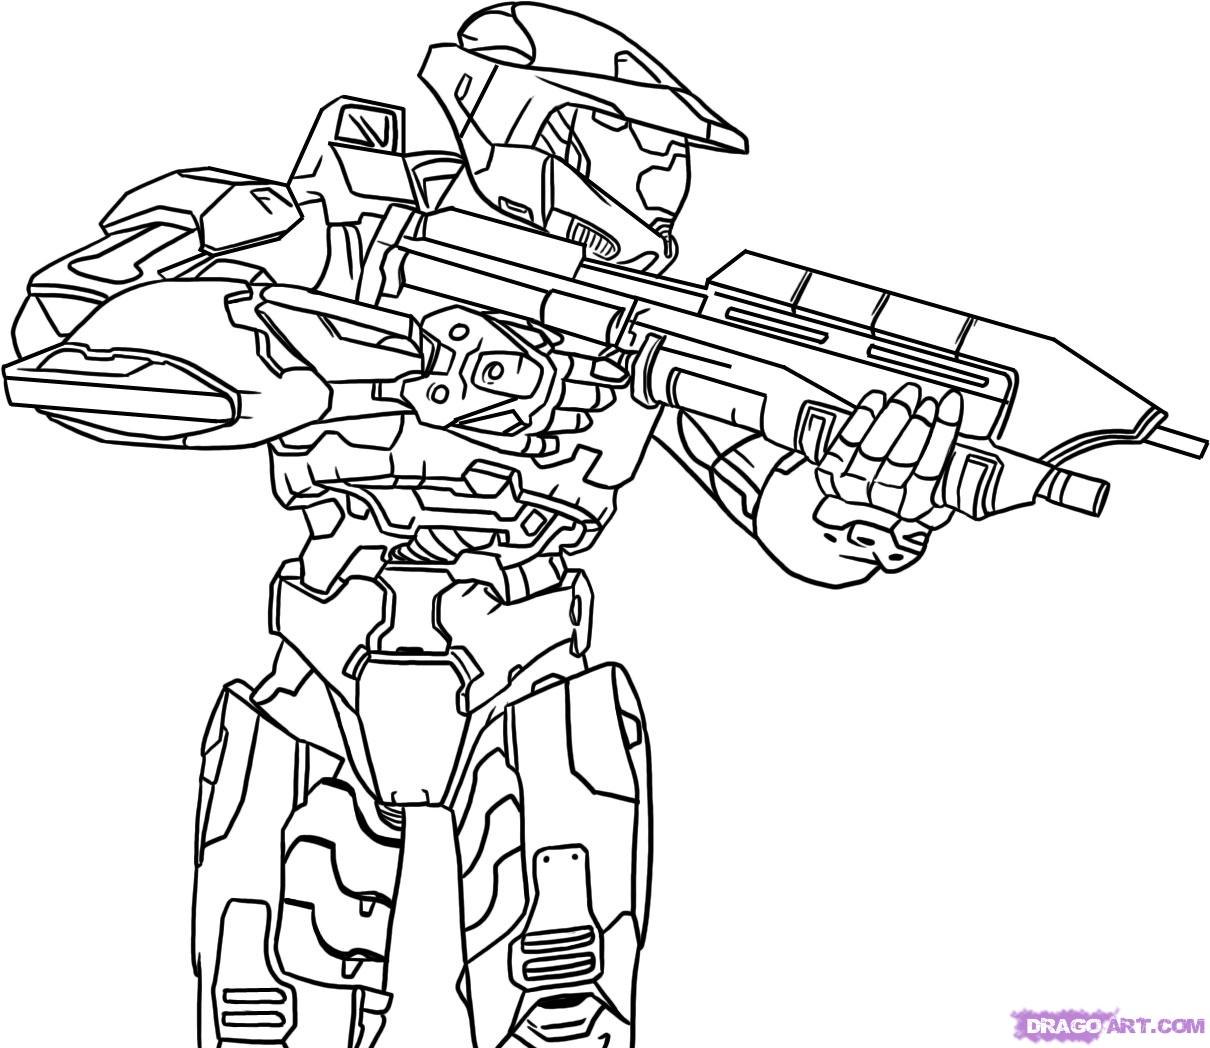 halo 5 coloring pages halo 5 dibujos para pintar dibujos para pintar 5 halo coloring pages